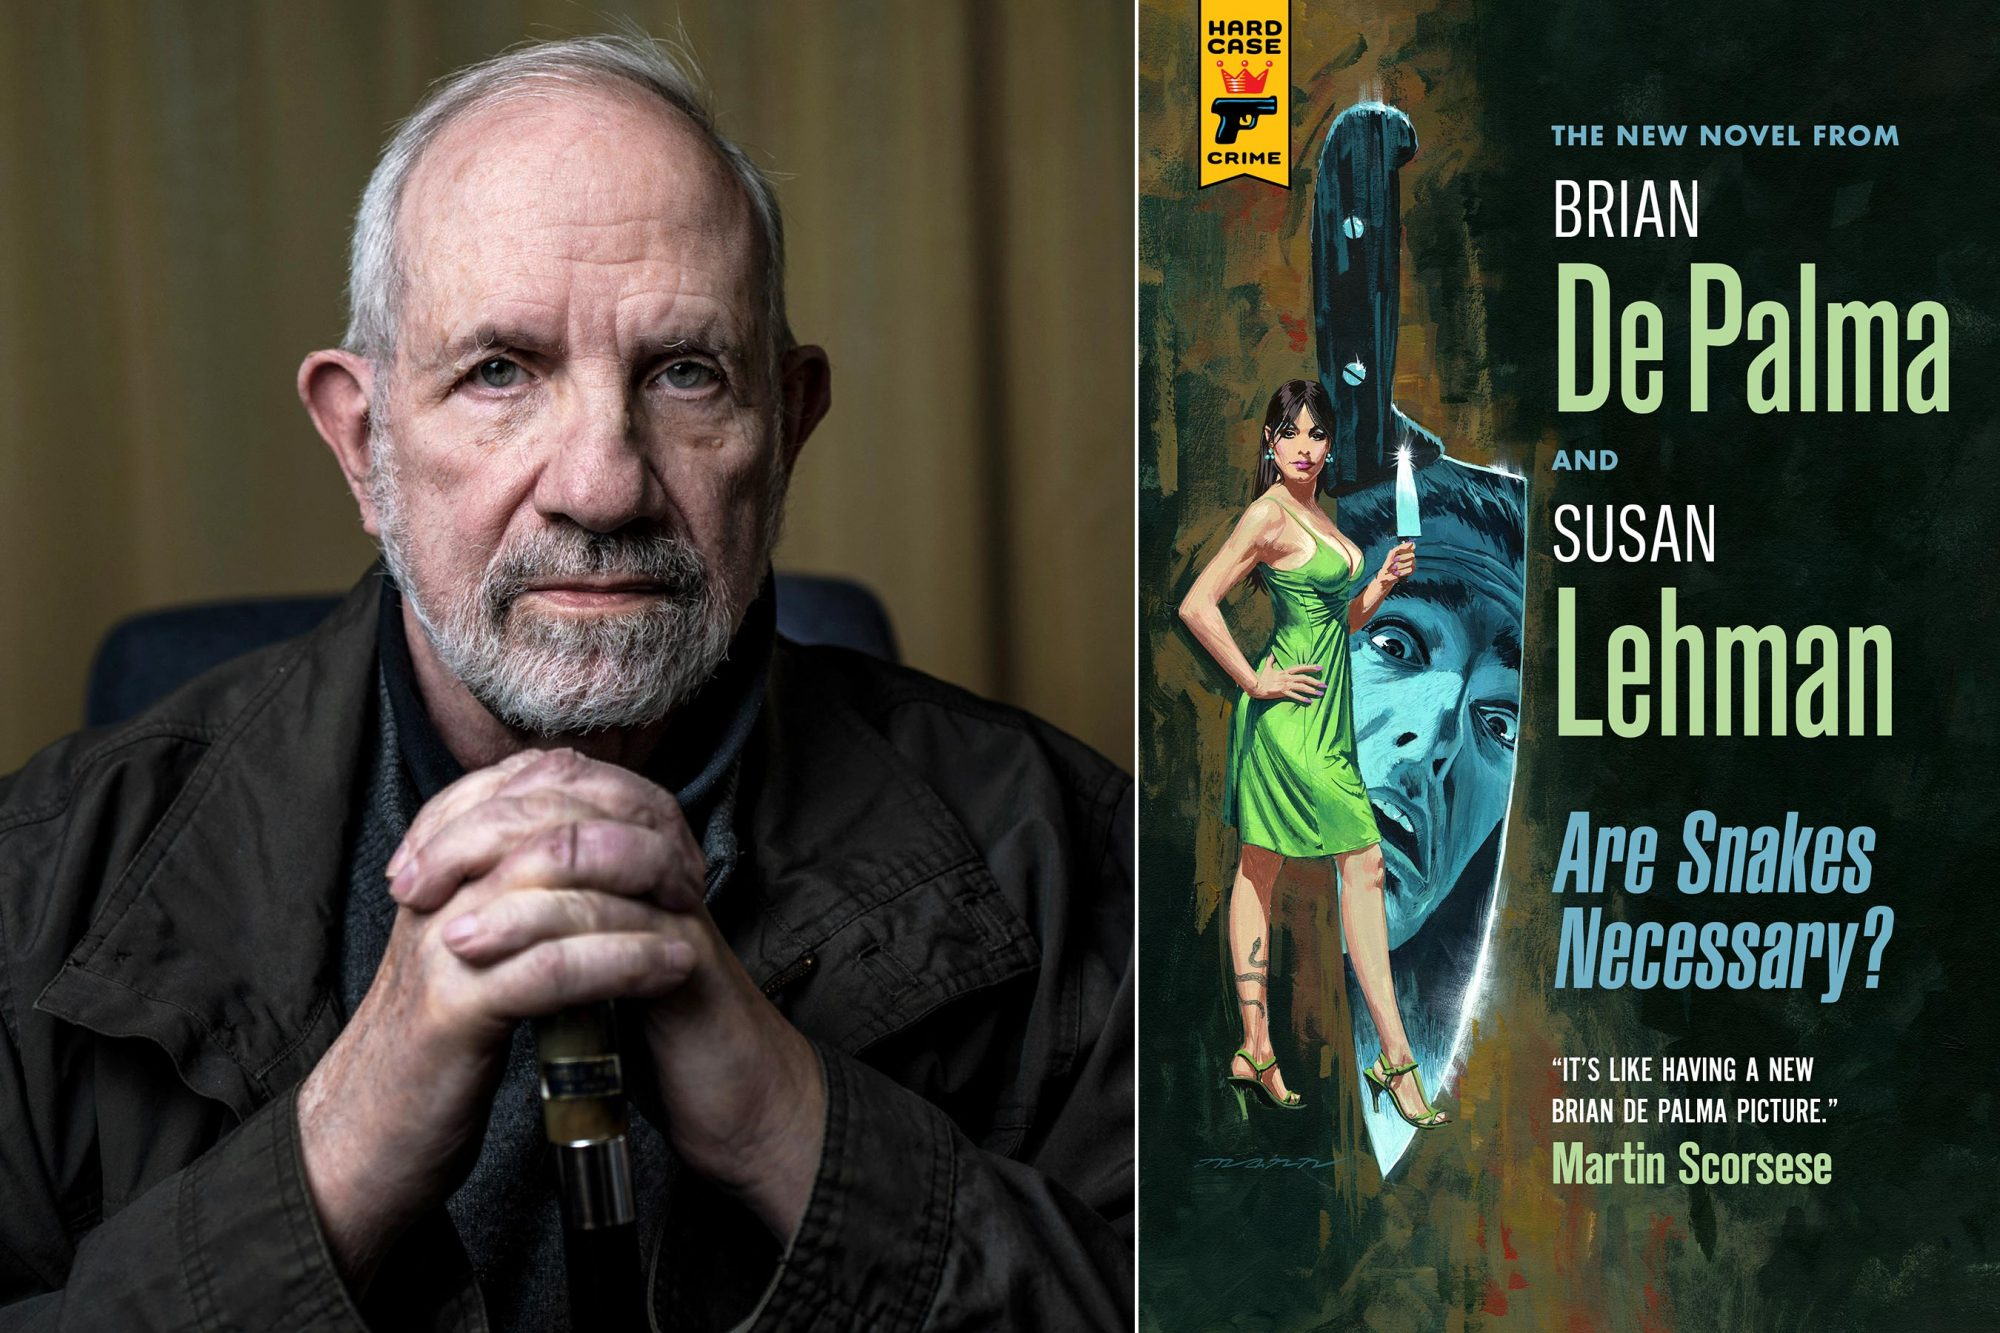 TOPSHOT - American film director, screenwriter and writer Brian De Palma poses on March 29, 2019 in Lyon. (Photo by JEFF PACHOUD / AFP) (Photo credit should read JEFF PACHOUD/AFP/Getty Images) Are Snakes Necessary by Brian De Palma and Susan Lehman CR: Hard Case Crime